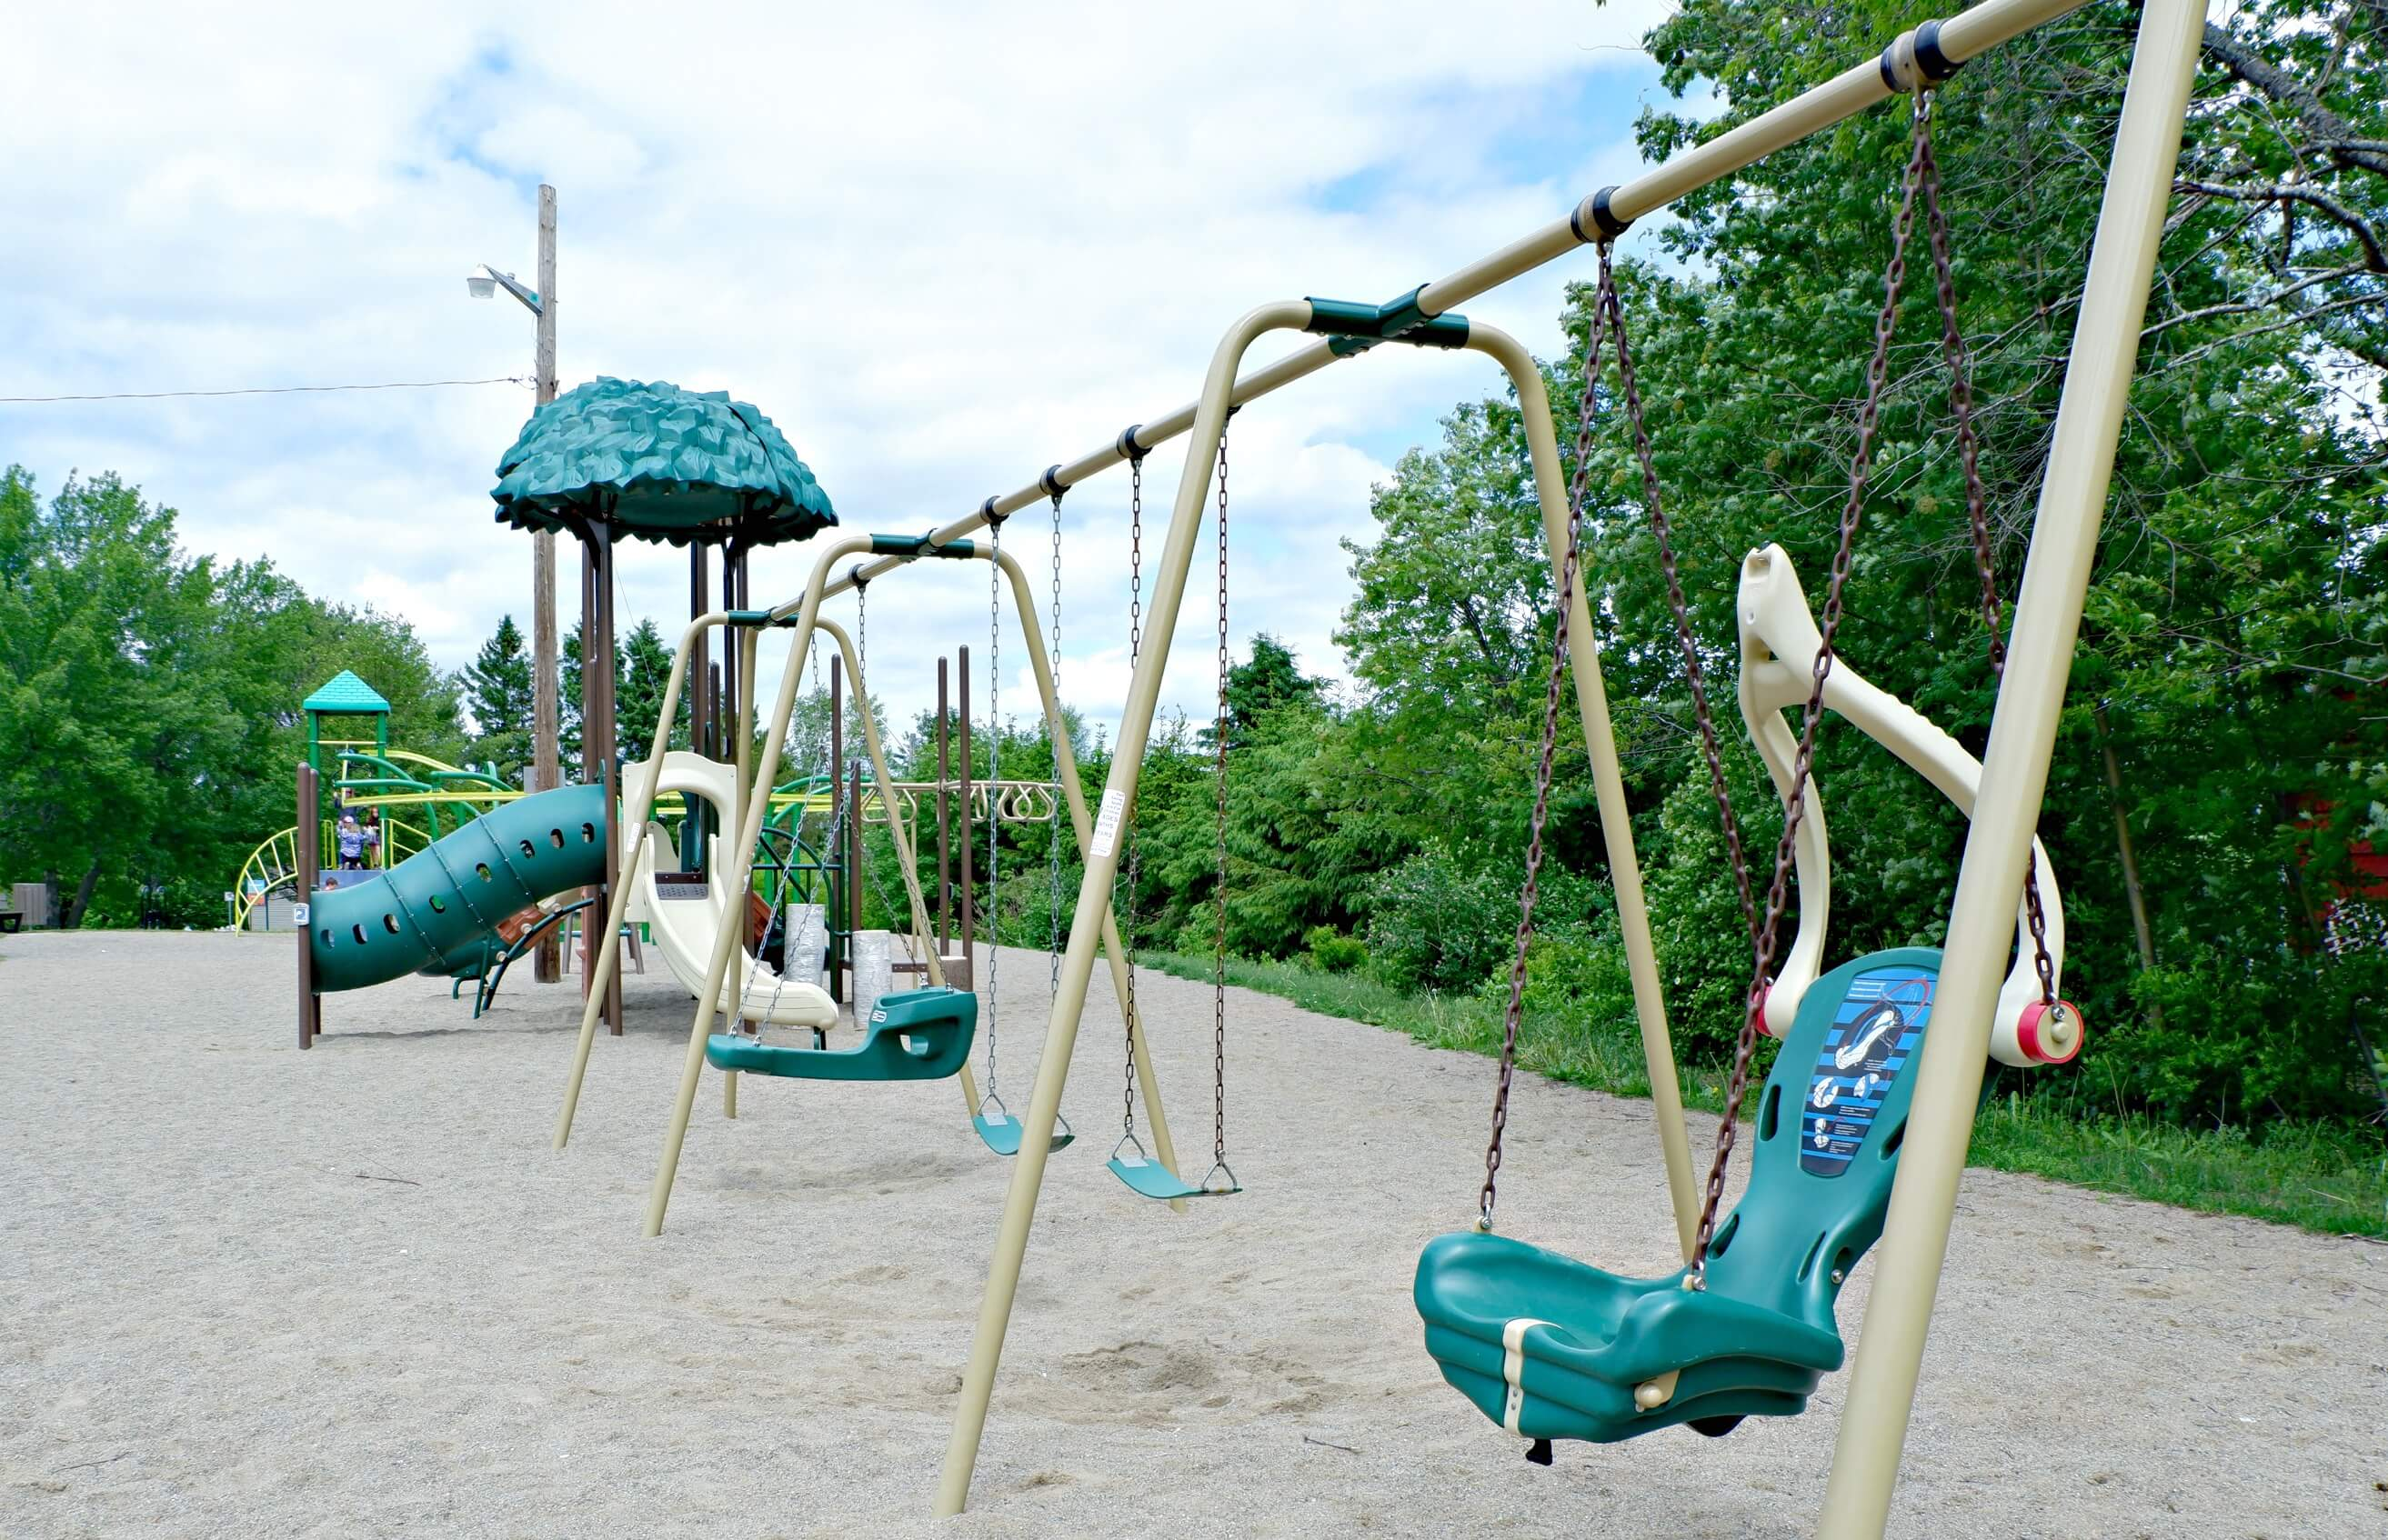 bridgedale playground riverview moncton dieppe best park play space pickle planet accessible swings